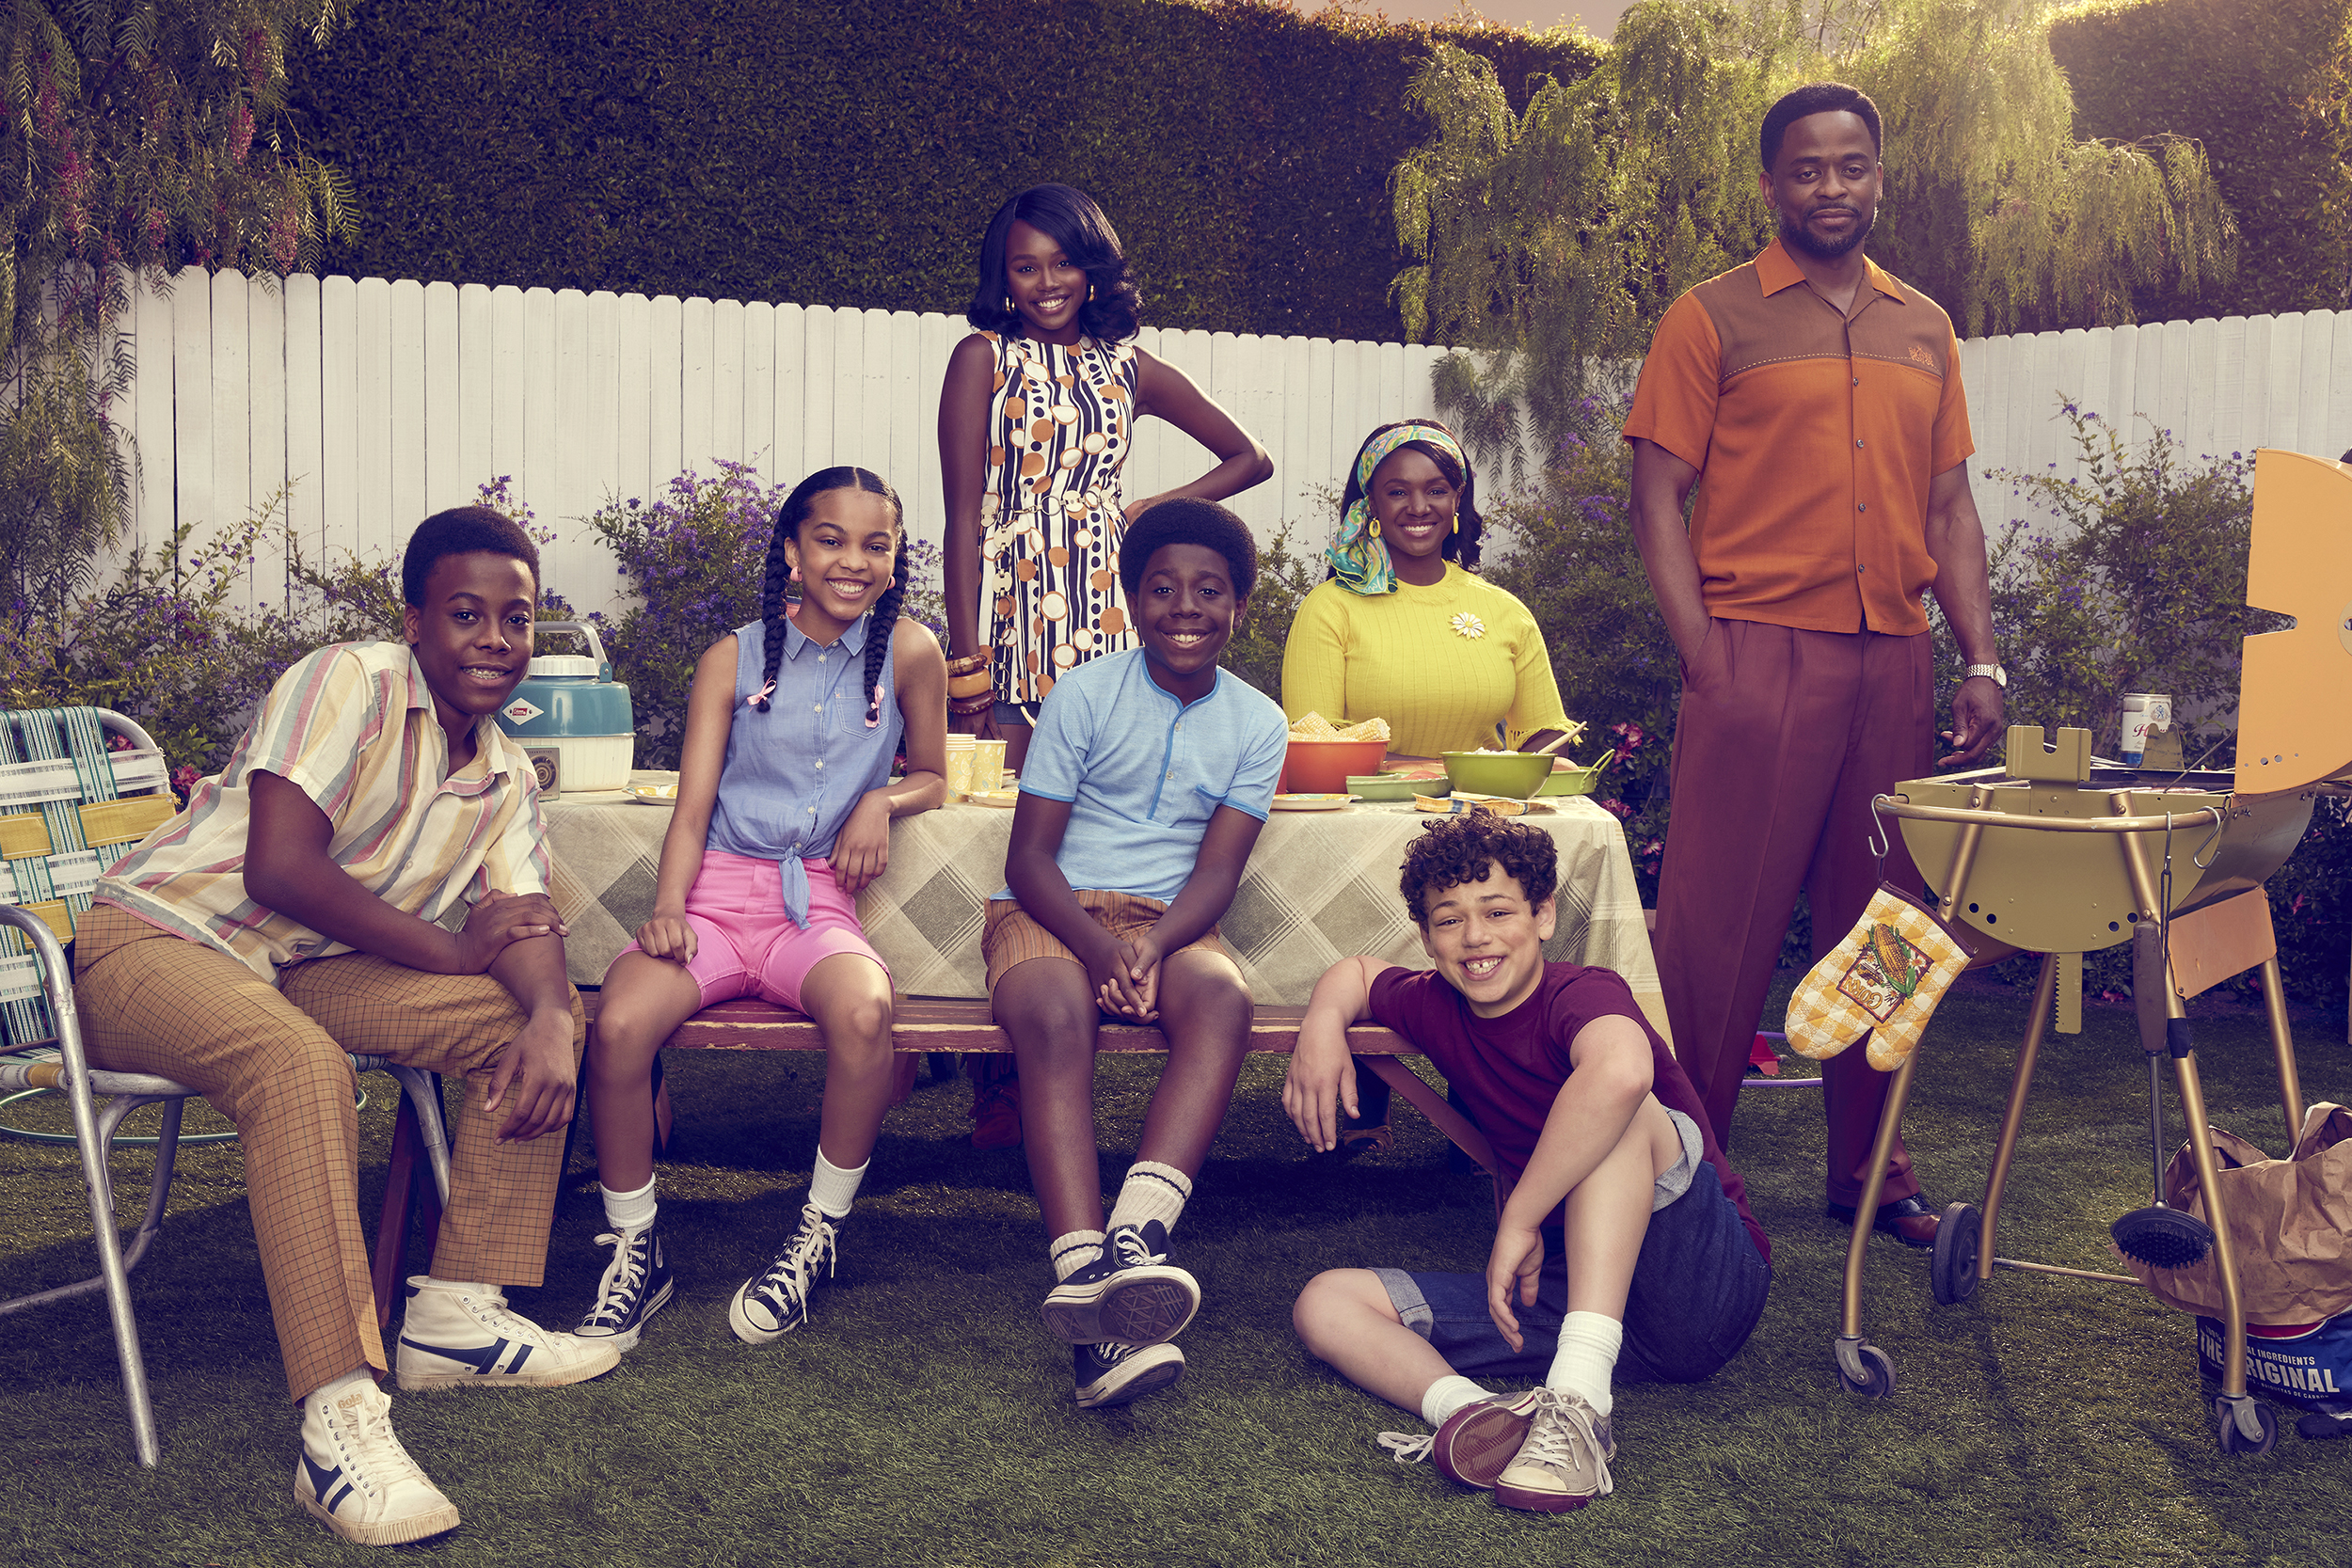 ABC's reboot of 'The Wonder Years' recaptures the dramedy's magic — and adds its own